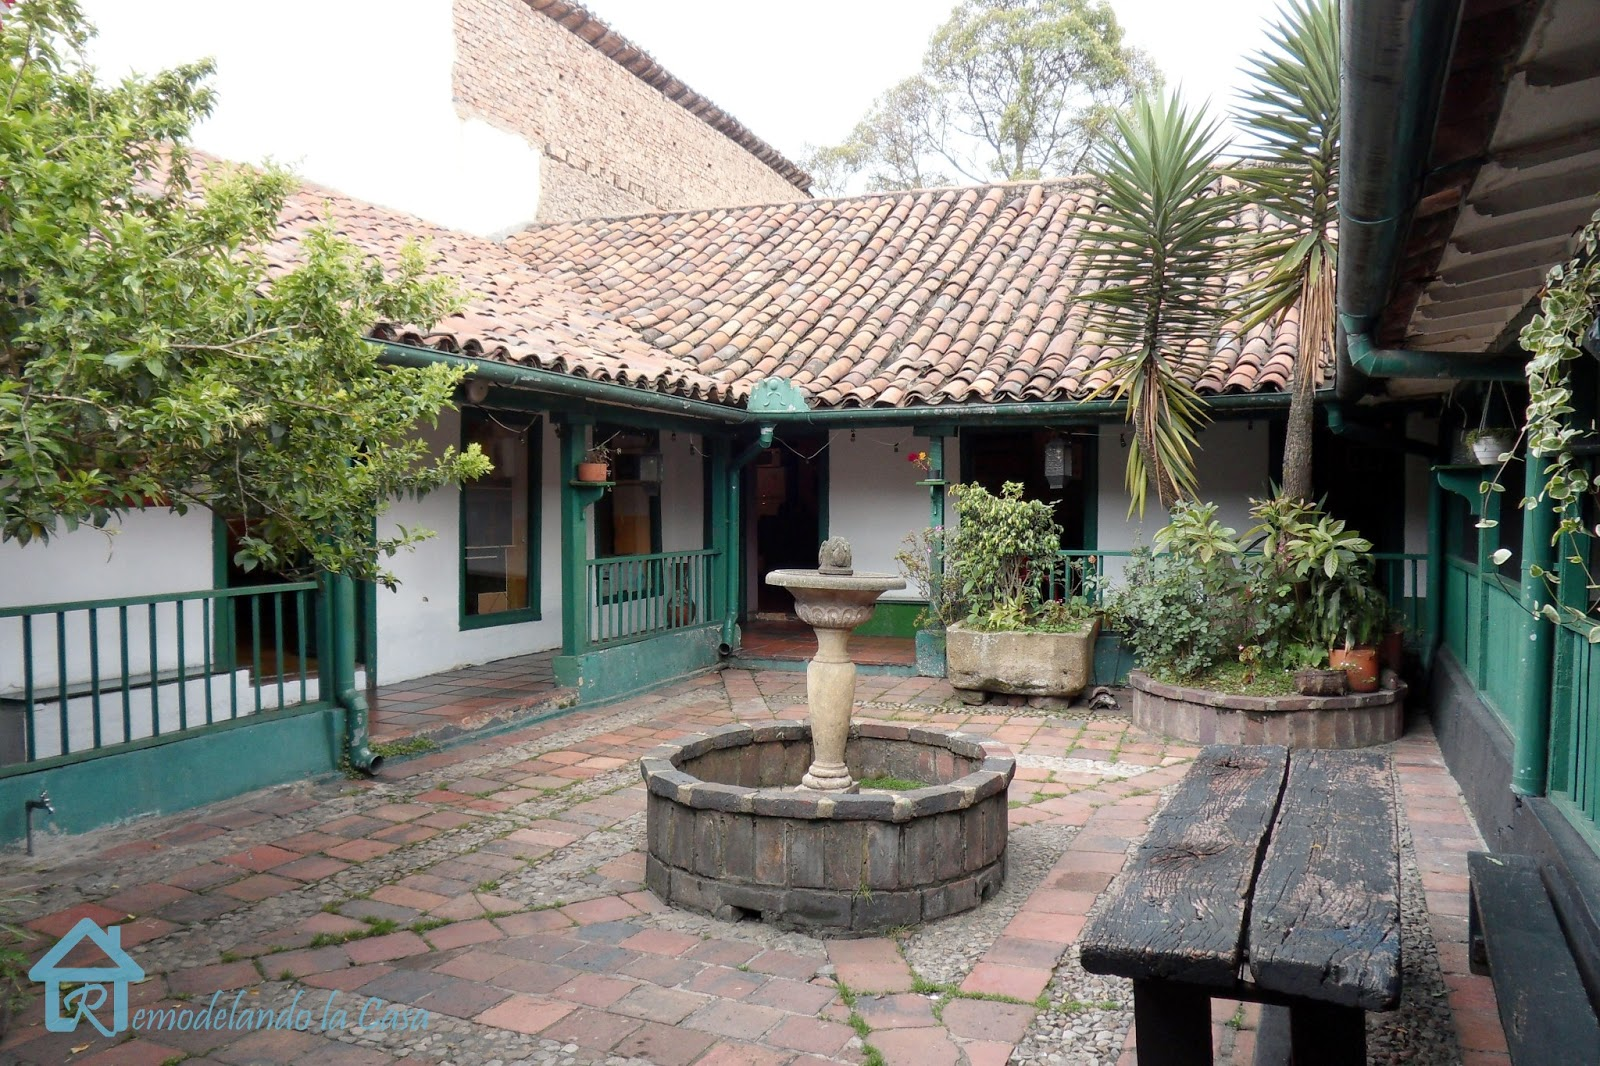 Remodelando la Casa: Spanish Colonial Crush